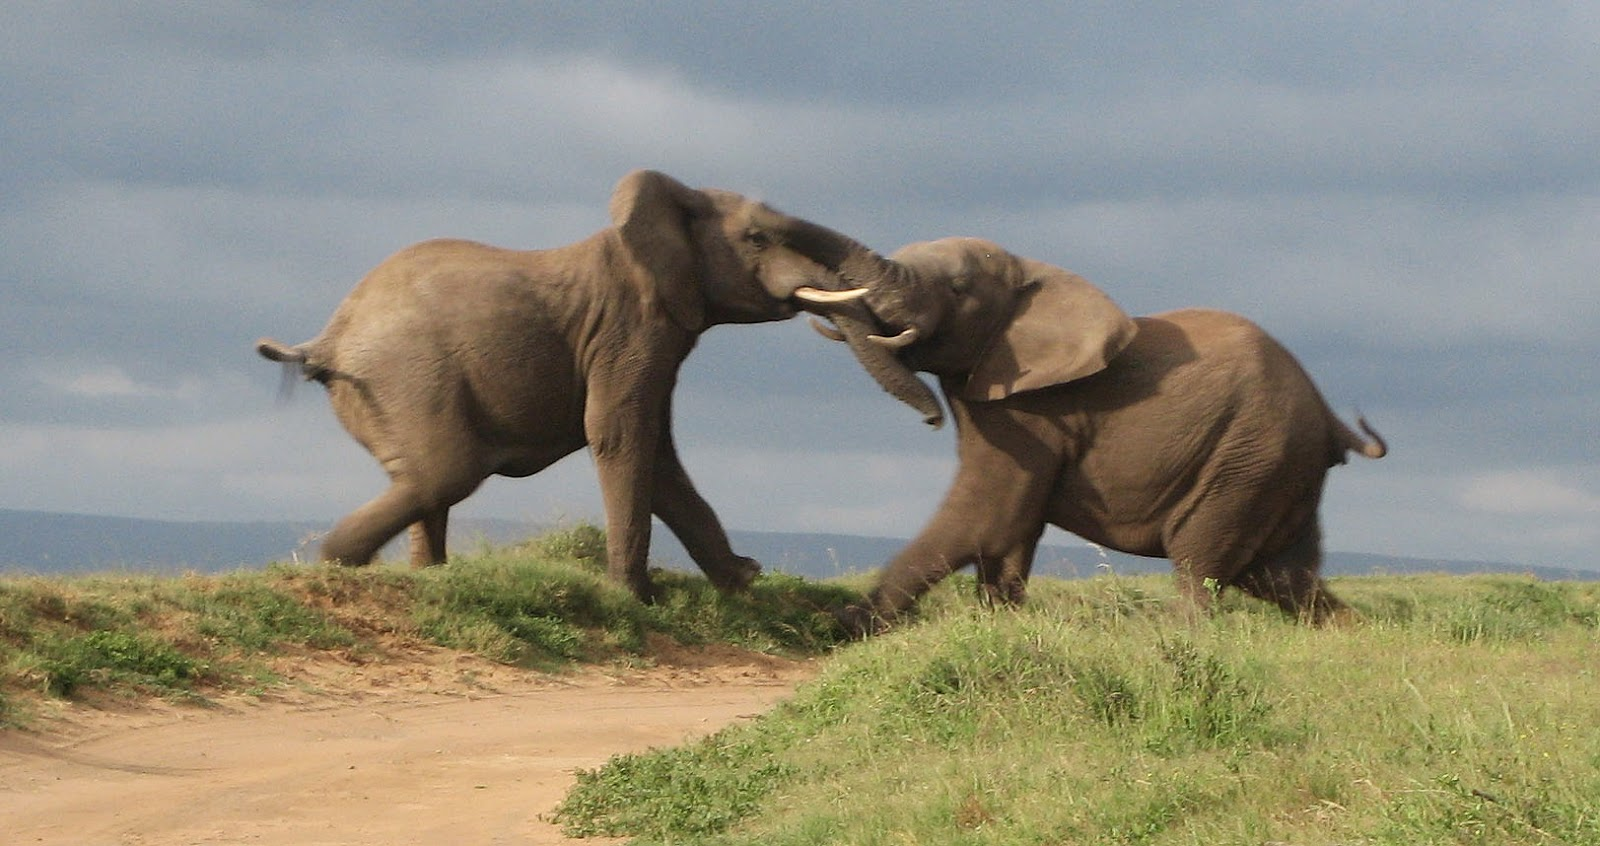 ase ah shay blog of the association of black psychologists there is an african proverb that states when elephants fight only the grass gets hurt it speaks to the notion that when important people battle over small